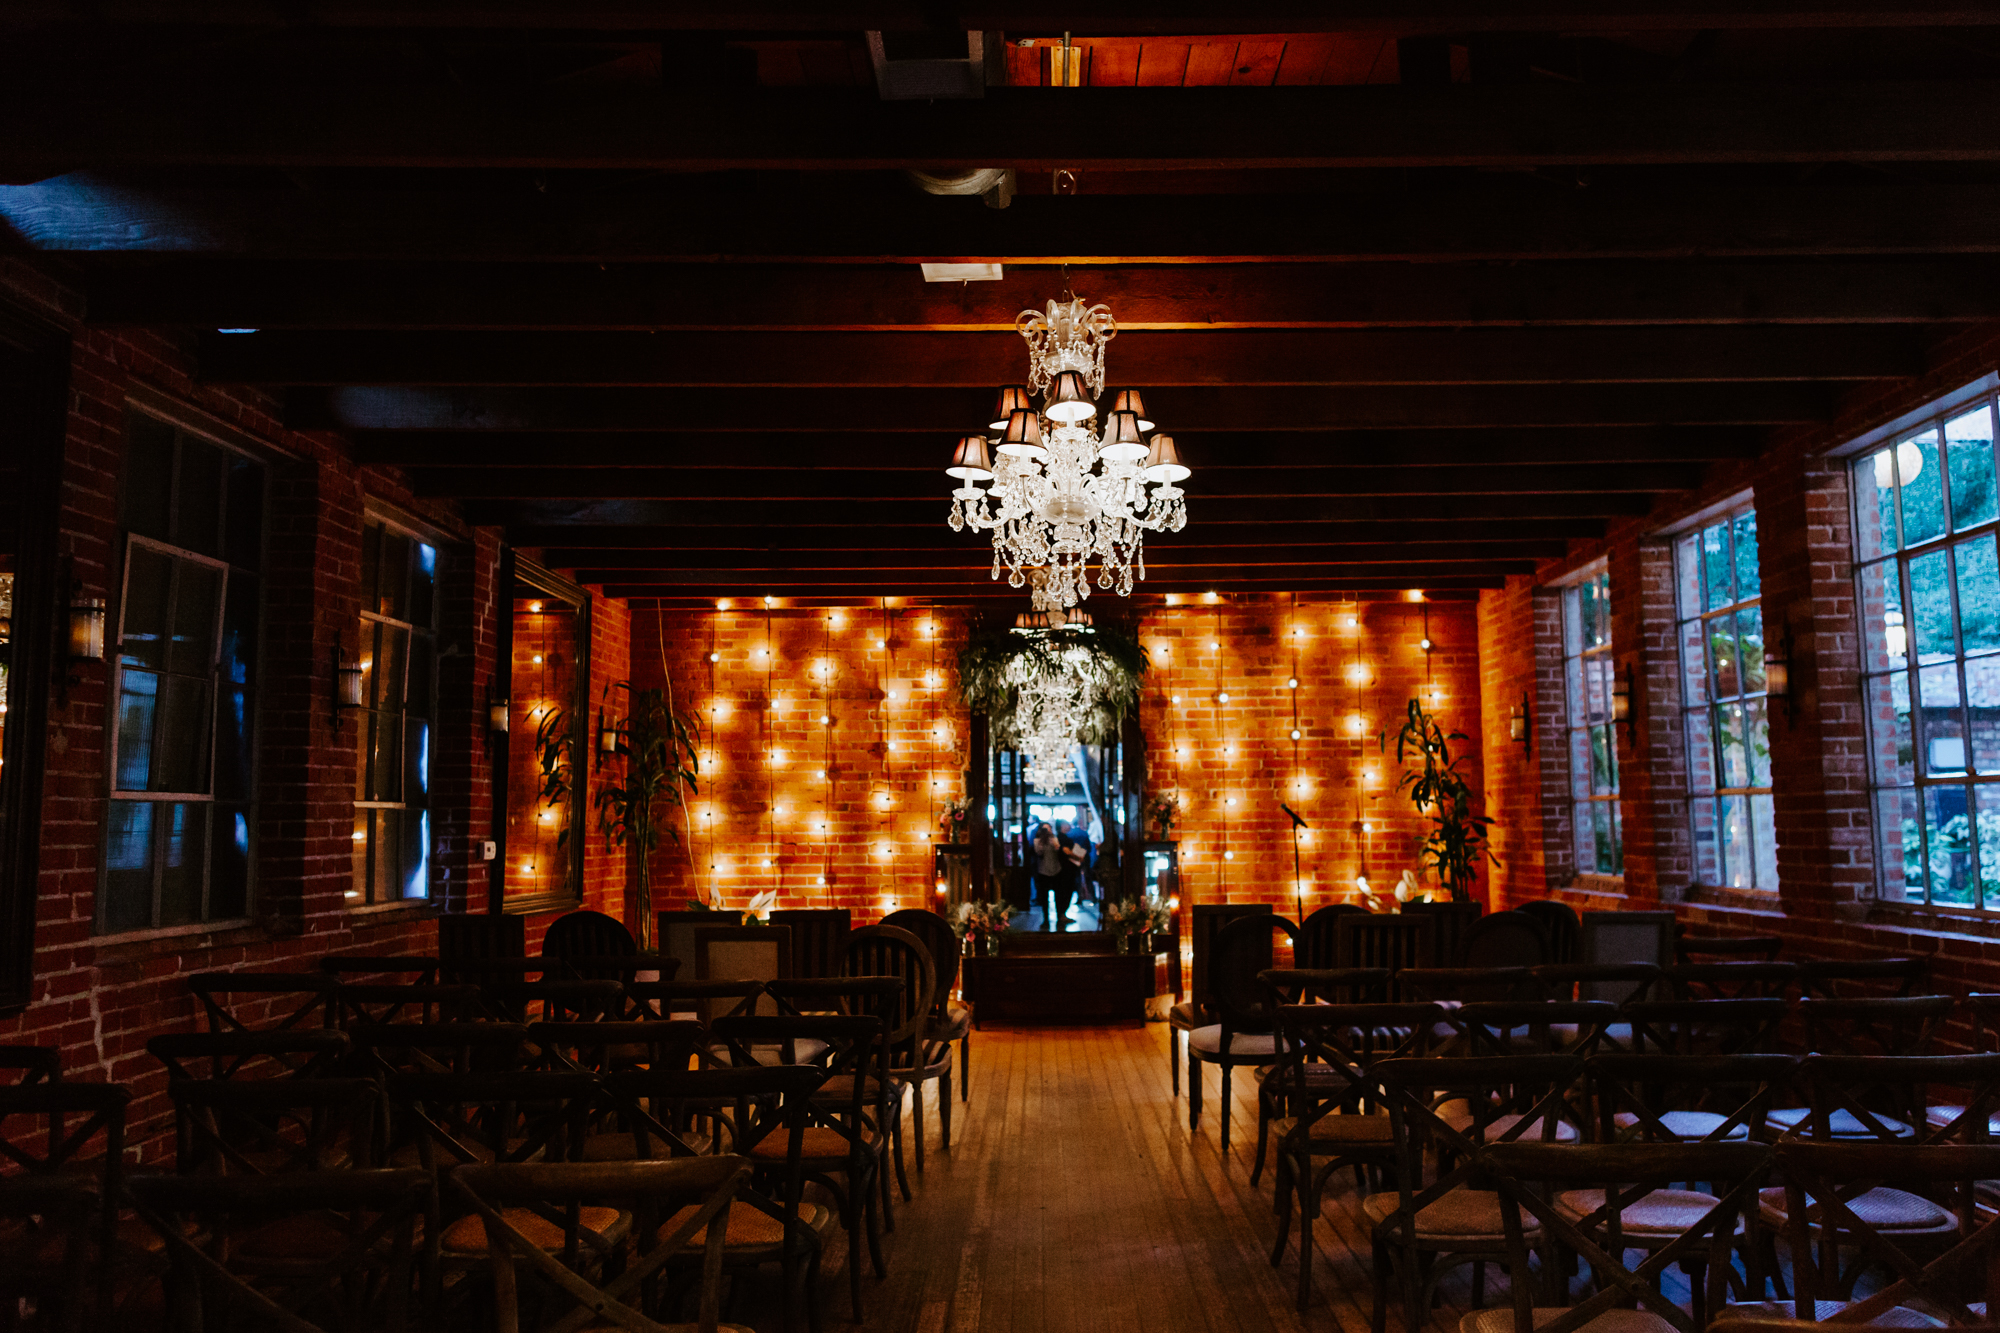 Rustic string light edison bulb wildflower ceremony set up | Carondelet House Wedding in Downtown Los Angeles | Los Angeles Wedding Photographer |Tida Svy Photography | www.tidasvy.com